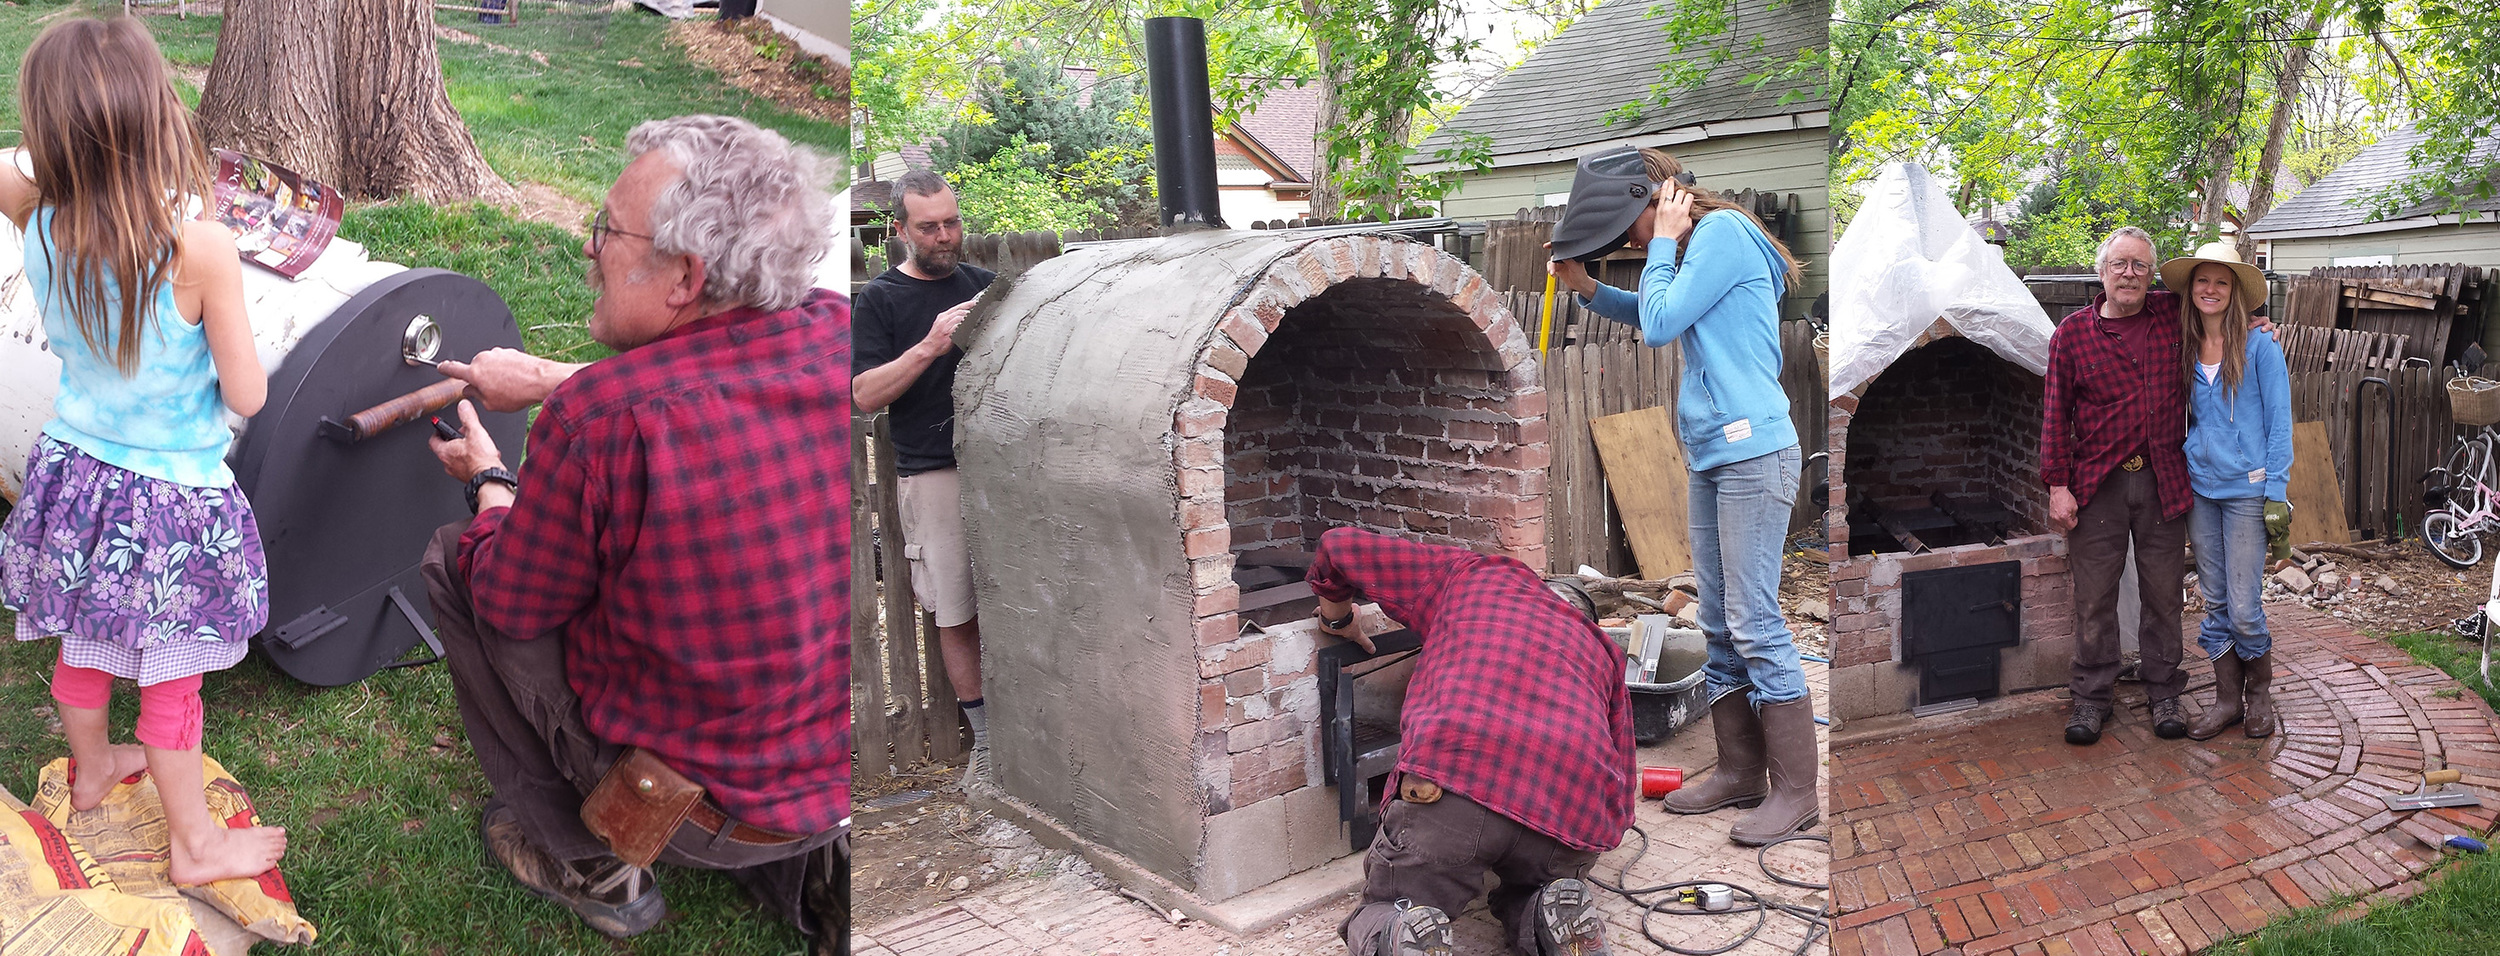 Scott bringing the barrel over to set in place, welding the firebox door in, first top coat going on the brick.  Grateful to have met Scott and become friends through this project!